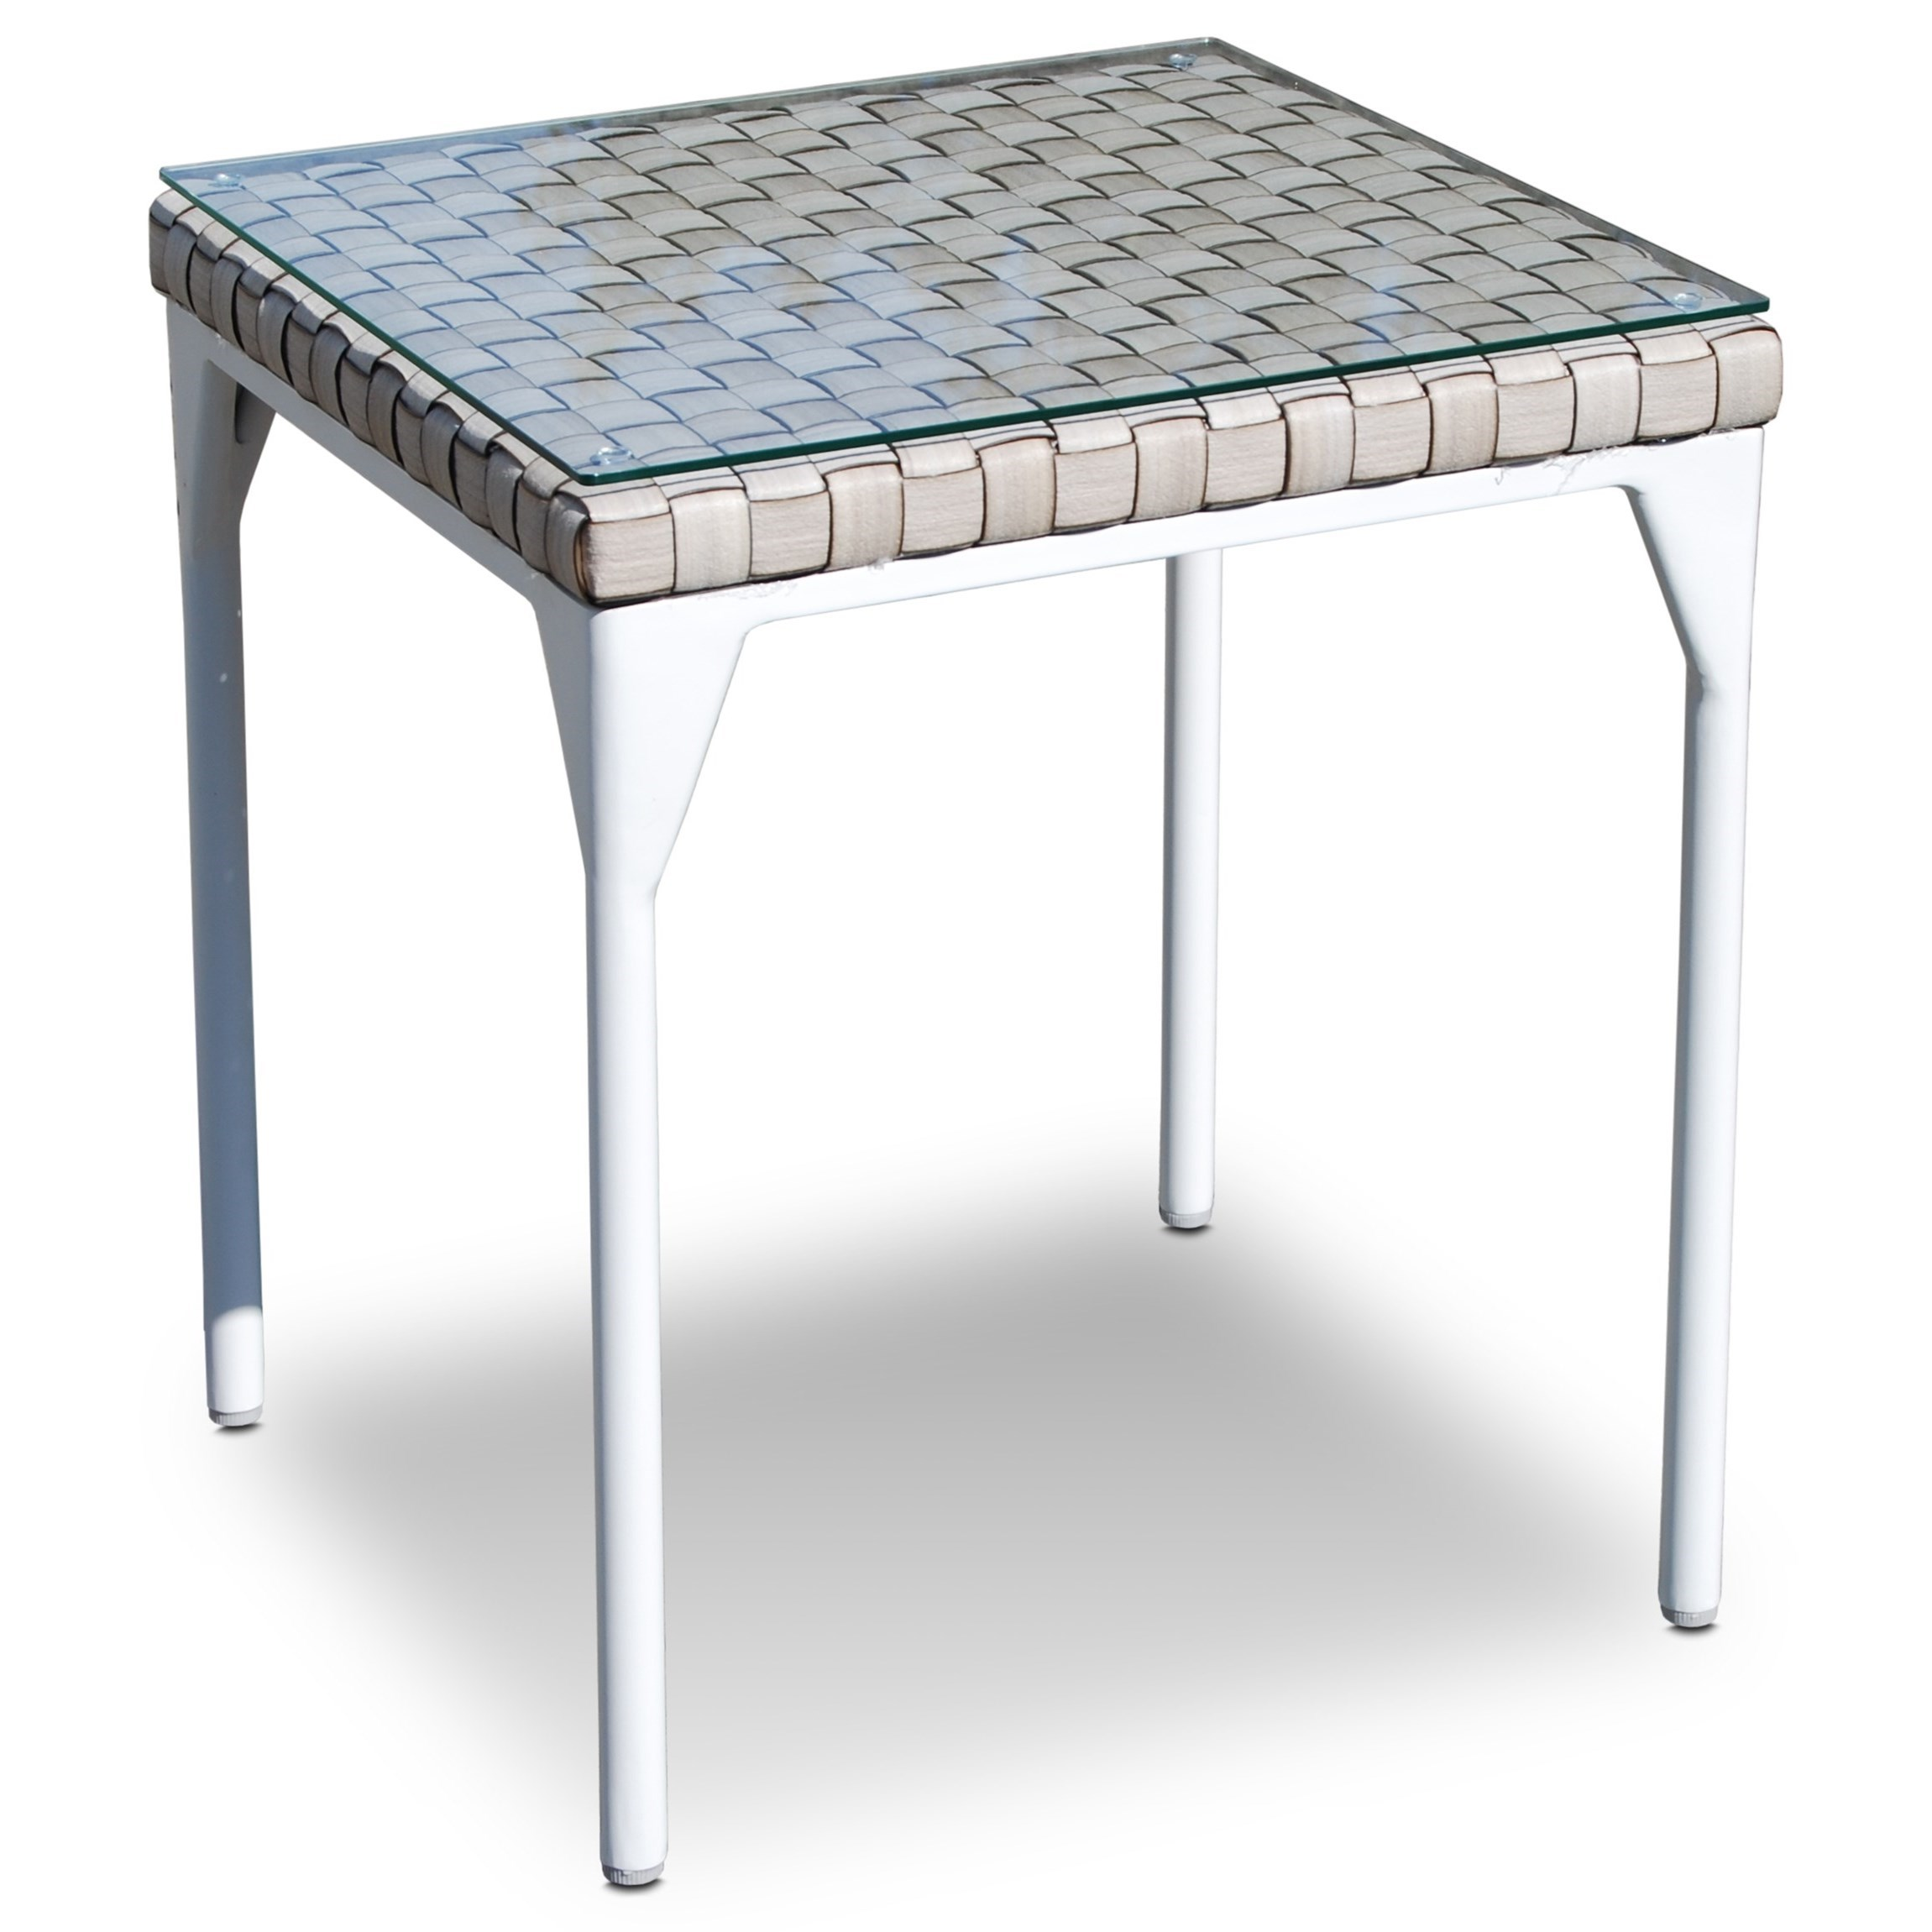 Glass Top Outdoor Table Skyline Design Brafta Outdoor Side Table With Glass Top